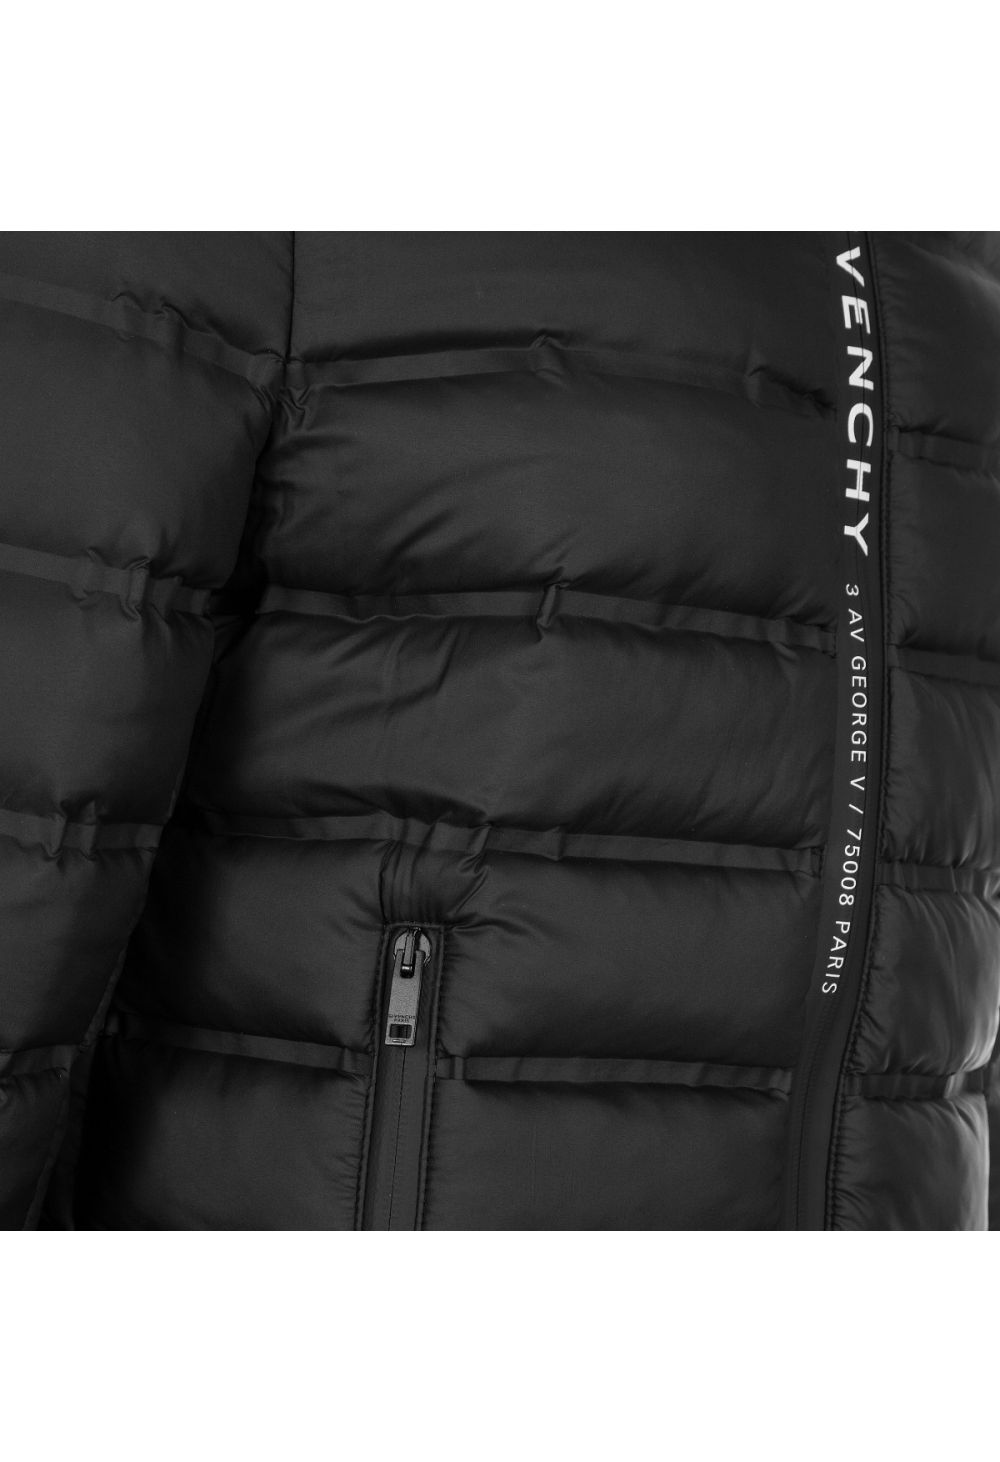 Givenchy Paris '3 Av George V' Lightweight Puffer Jacket